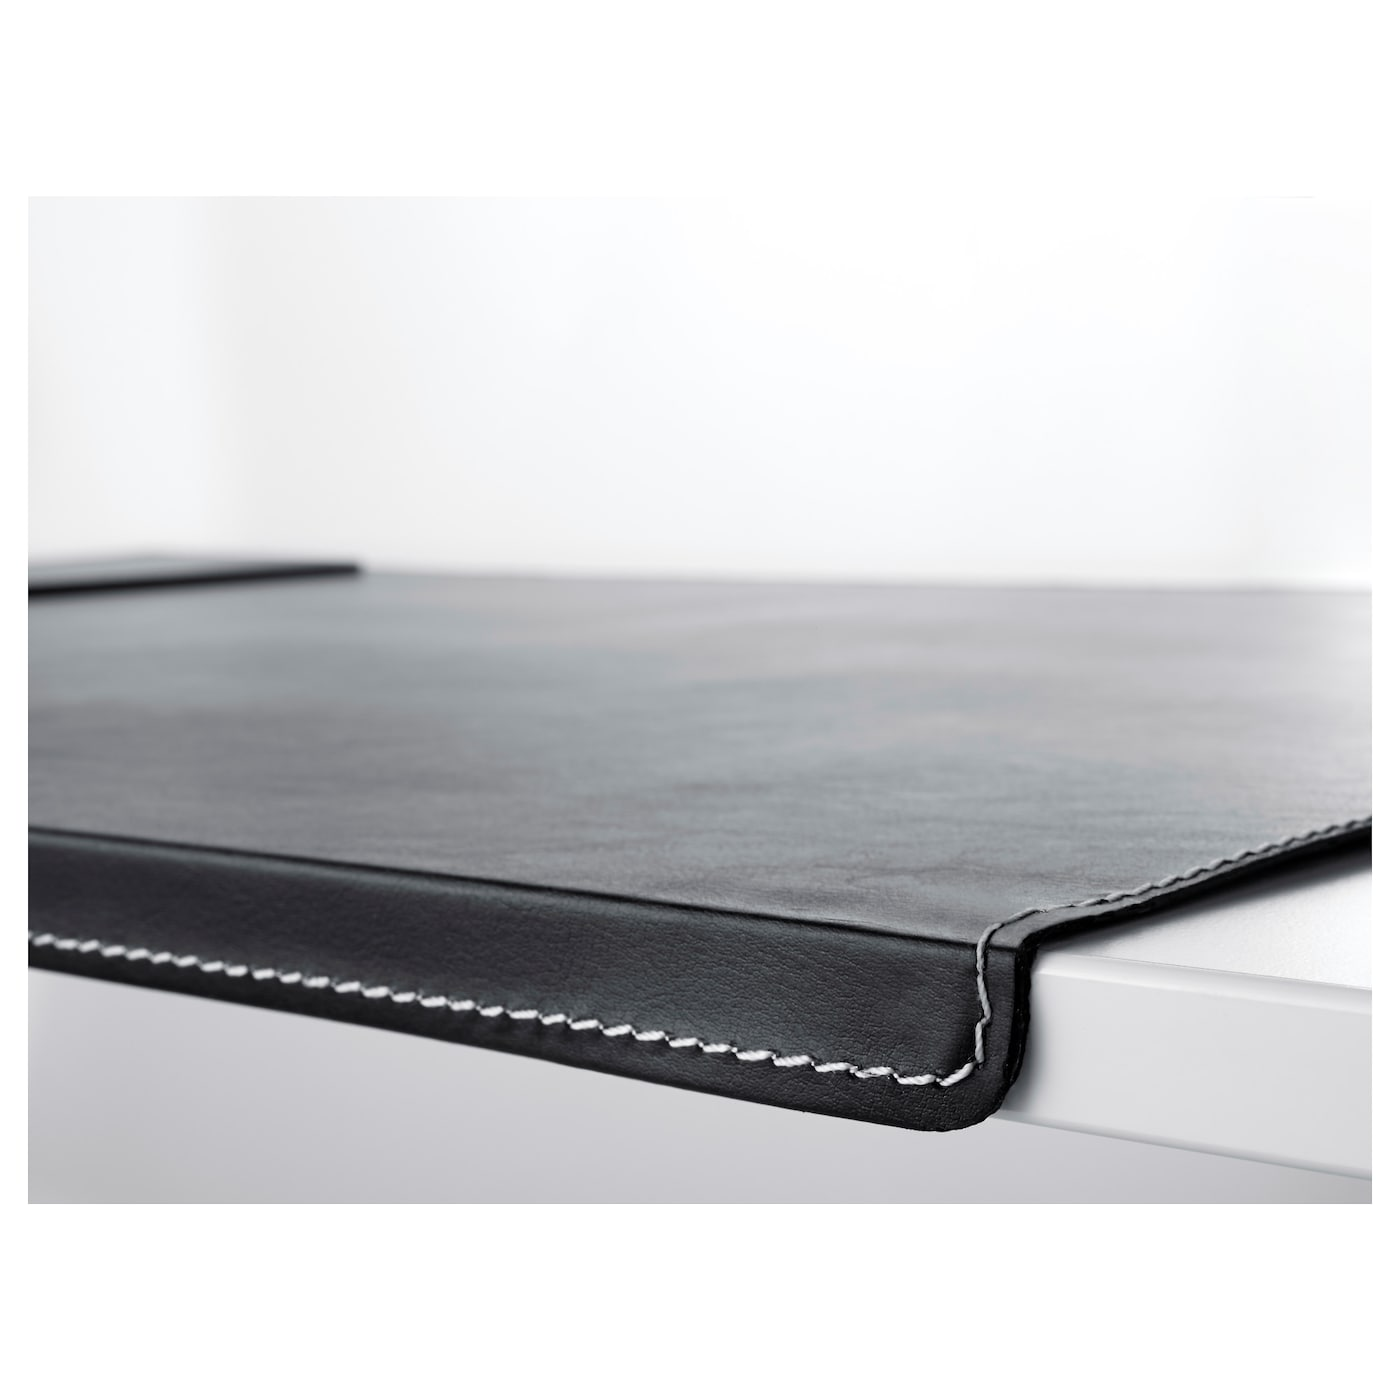 Great IKEA RISSLA Desk Pad The Bent Front Edge Keeps The Desk Pad In Place. Images